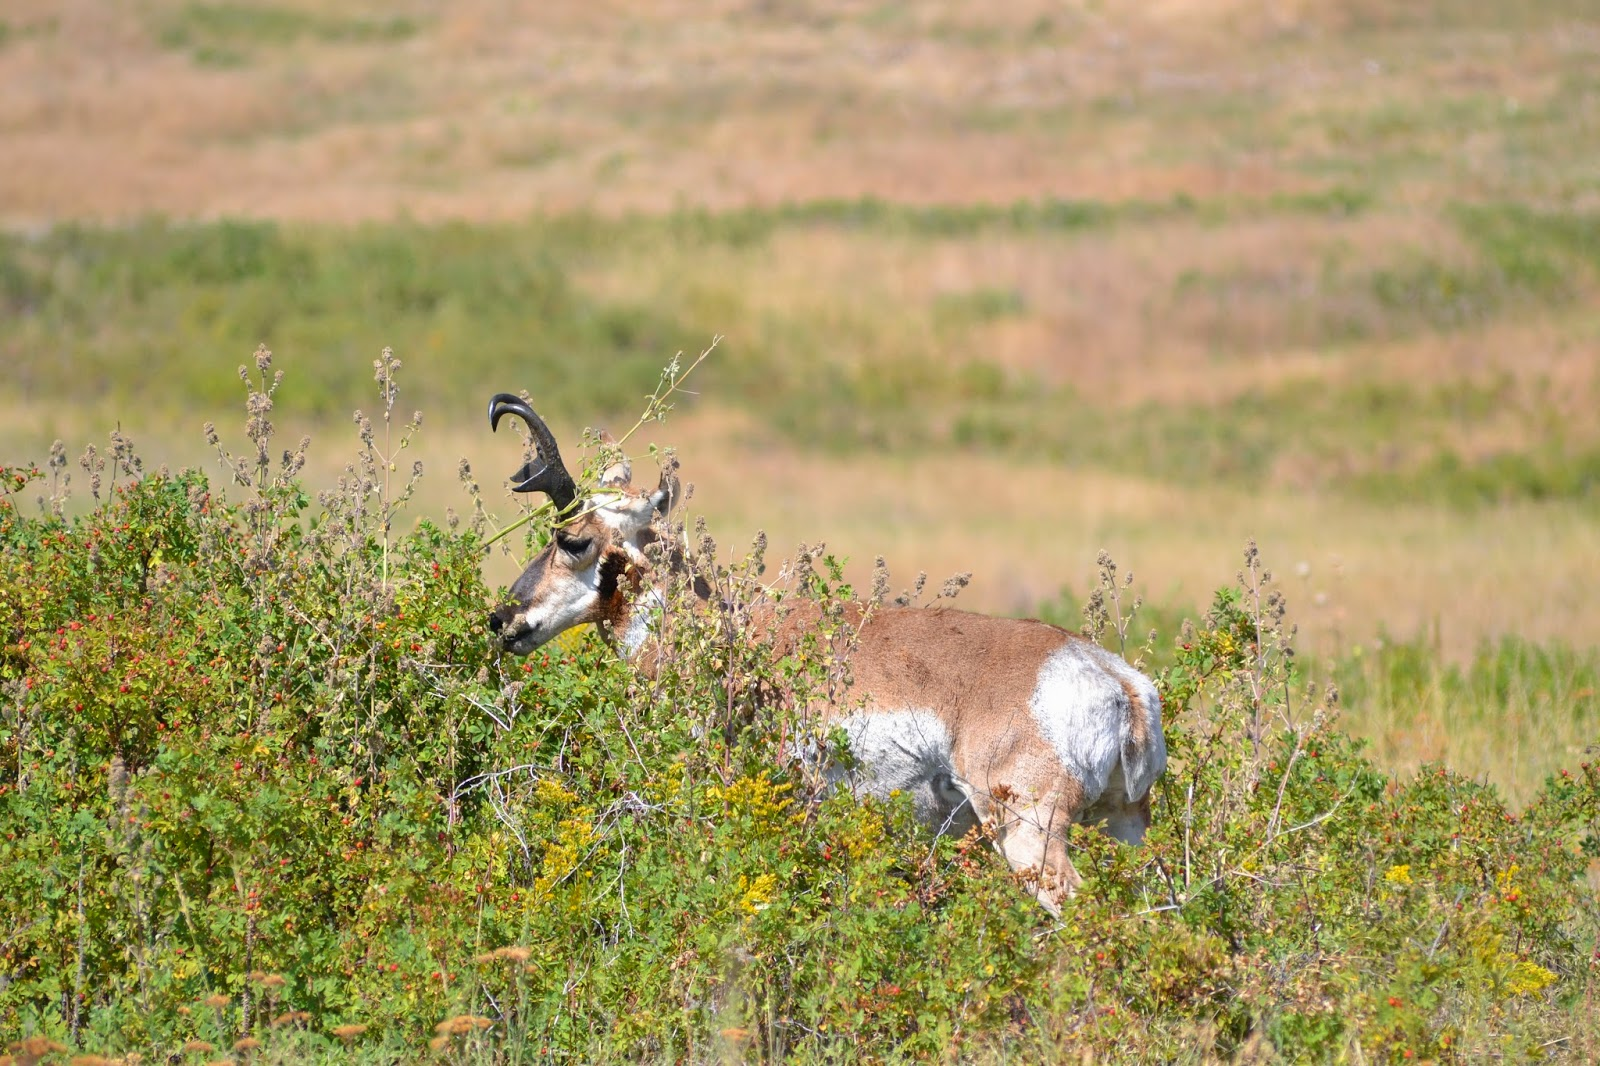 Pronghorn antelope, National Bison Range, Montana